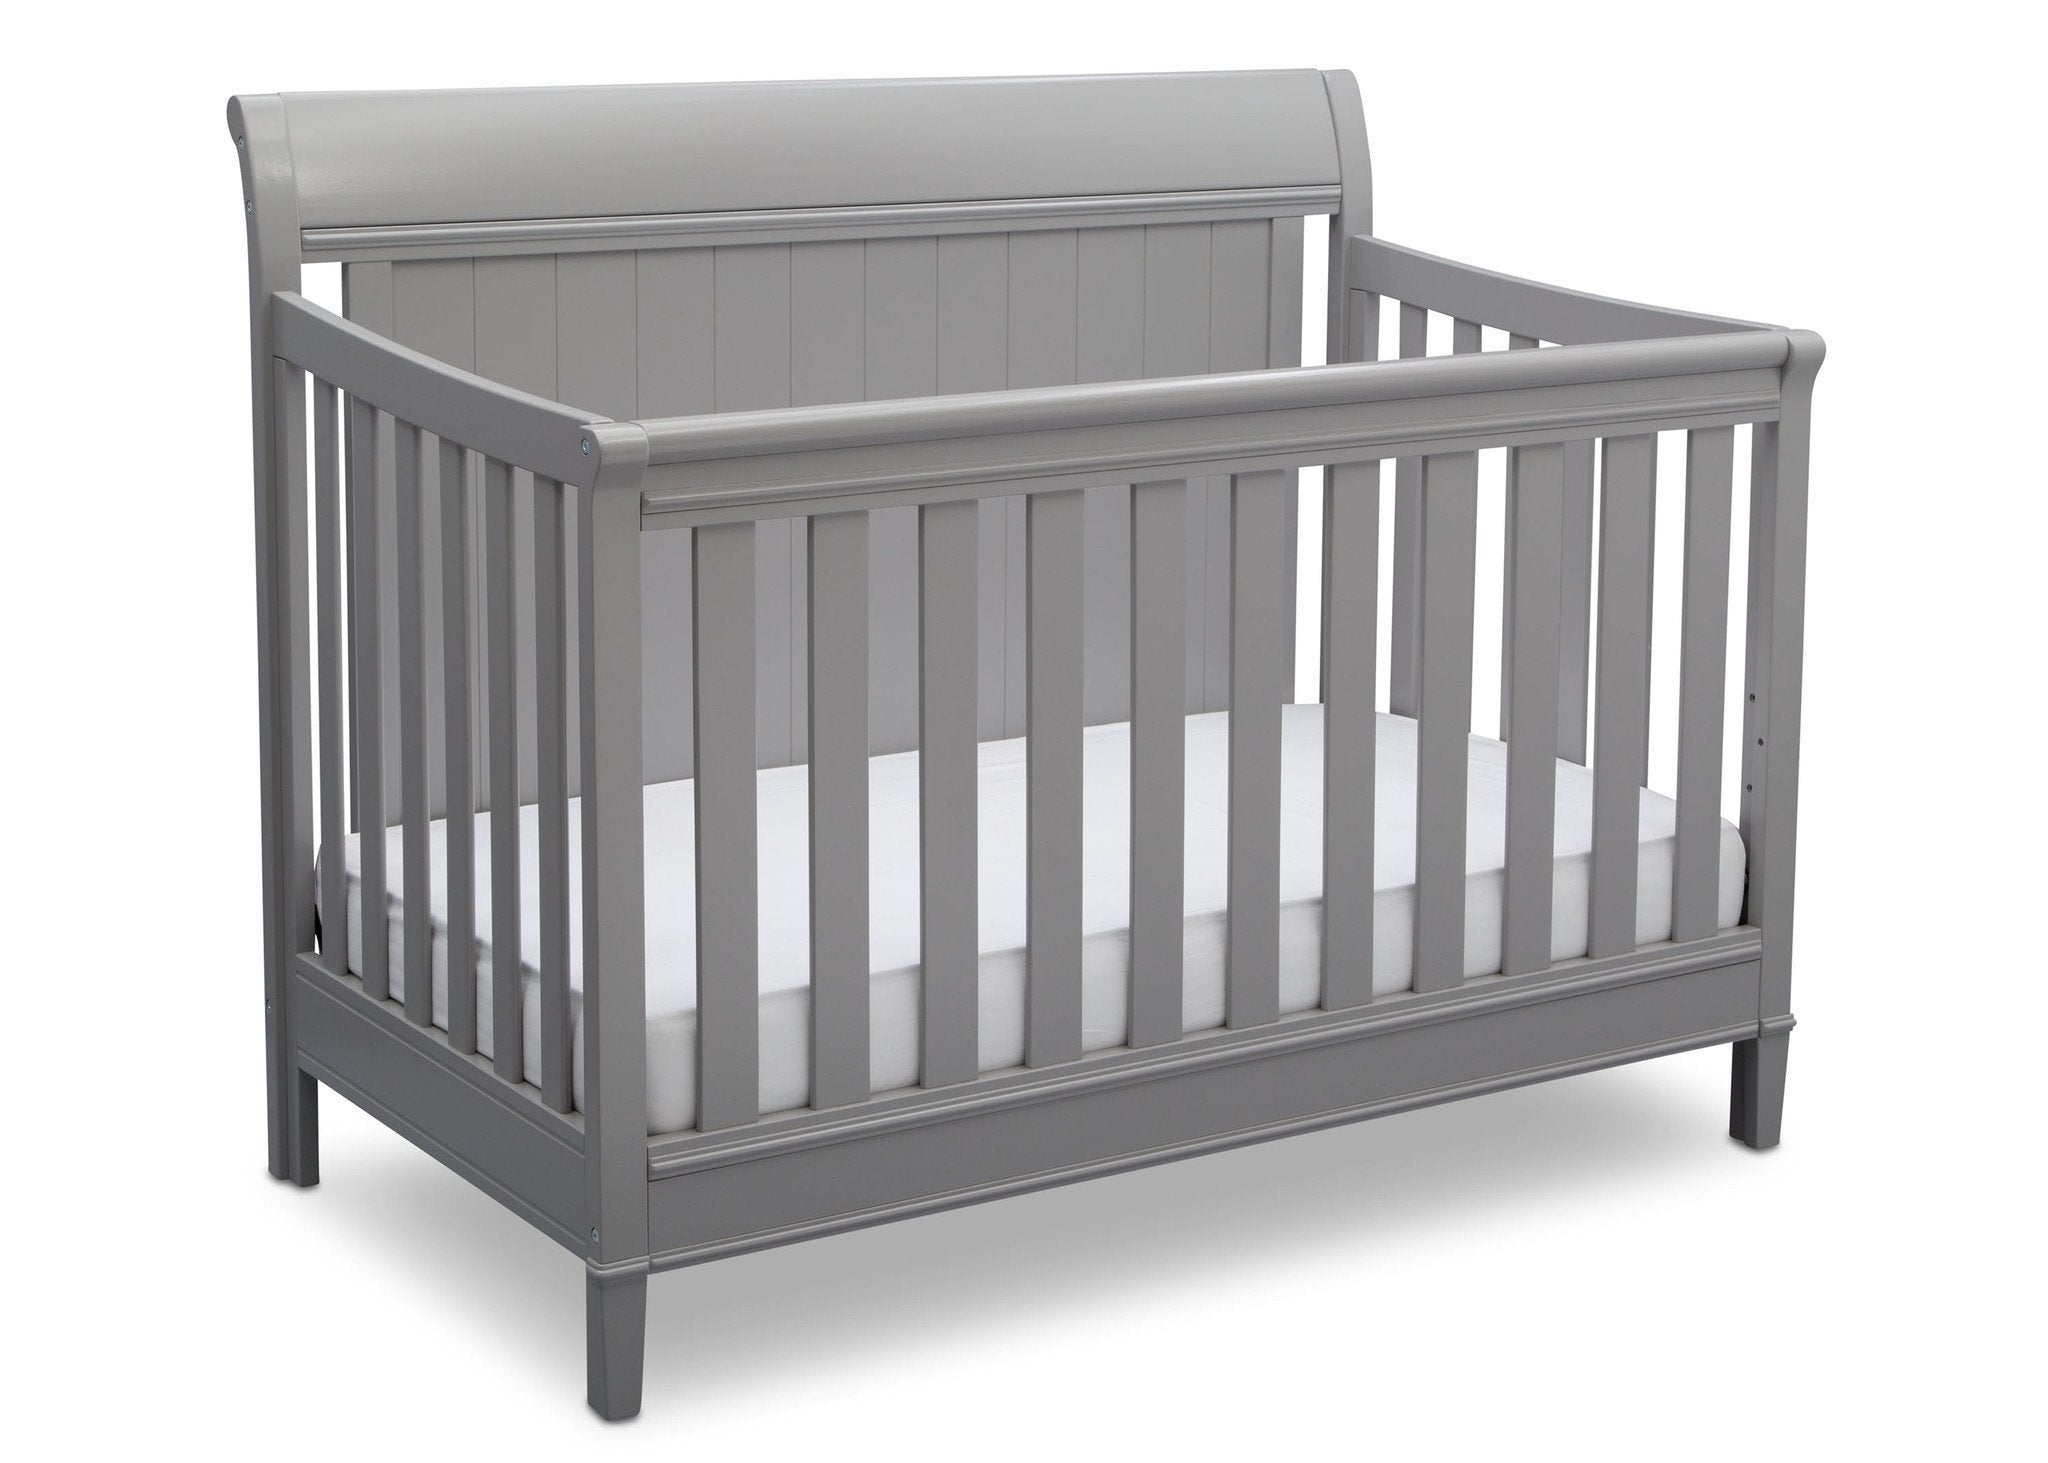 Delta Children Grey (026) New Haven 4-in-1 Crib, Angled View, b3b